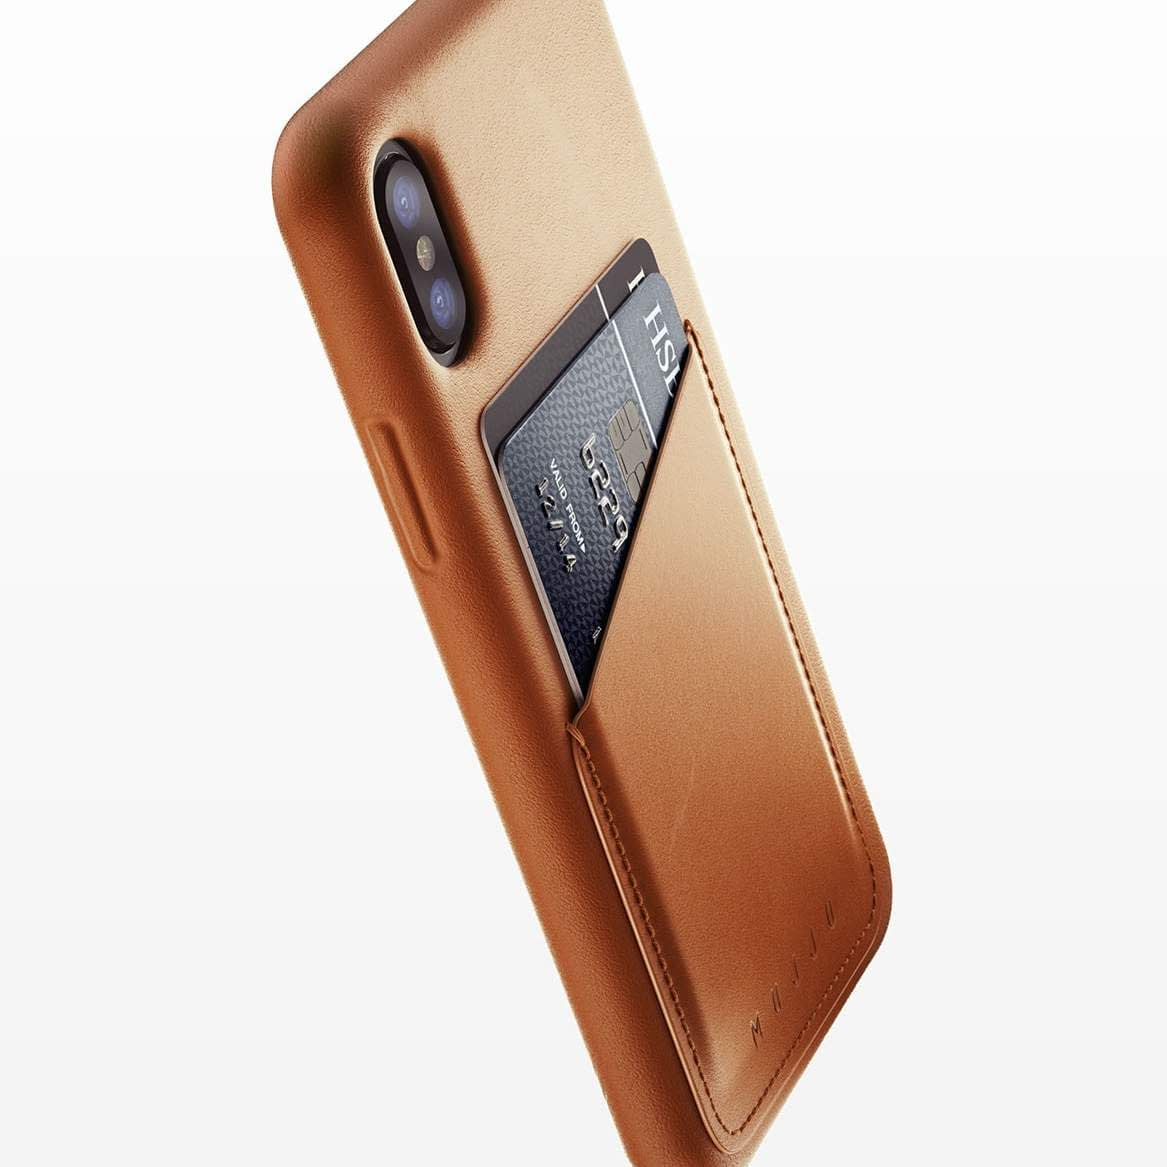 Full leather wallet case for iPhone X Tan 01